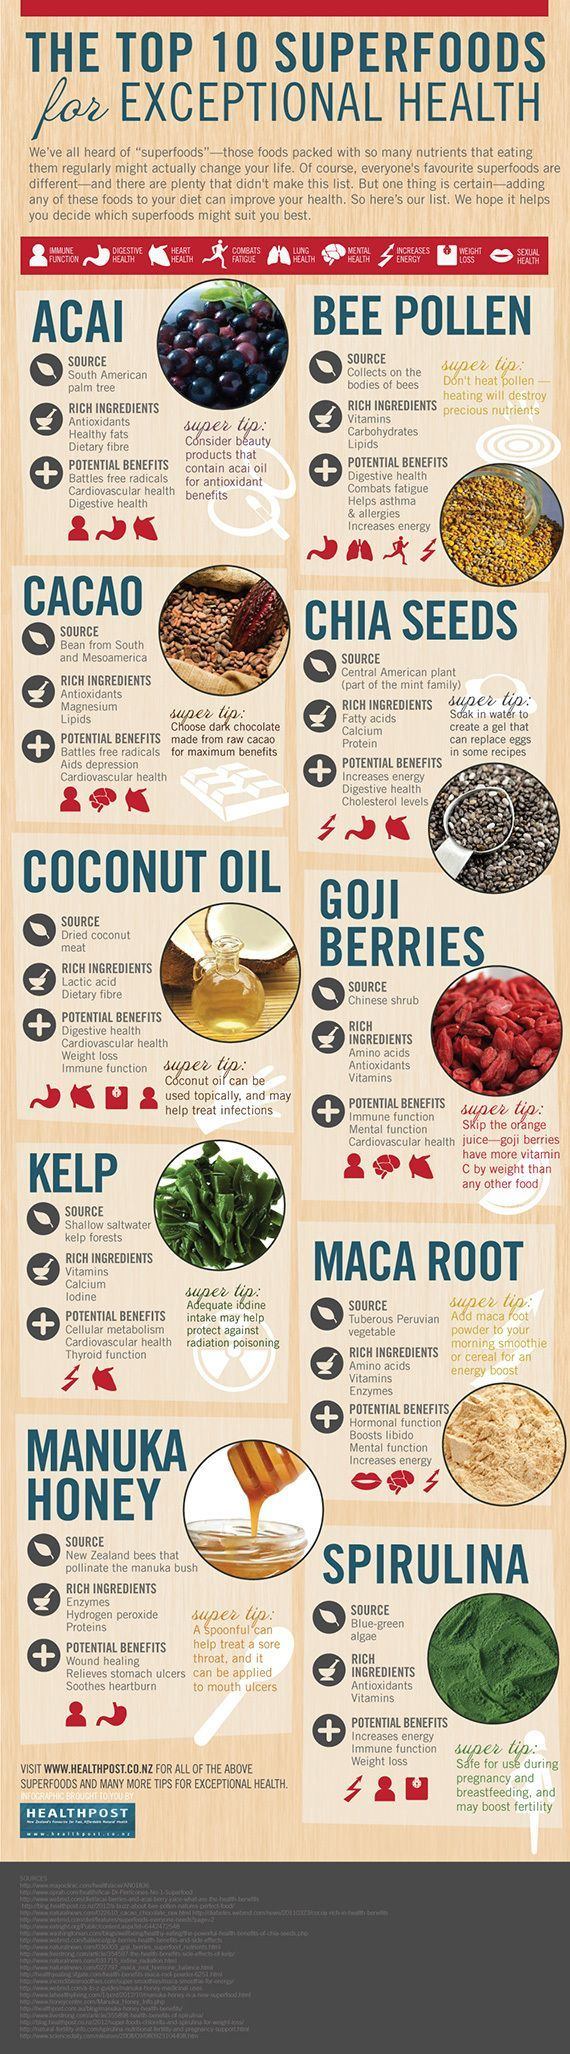 TOP 10 SUPERFOODS FORHEALTH